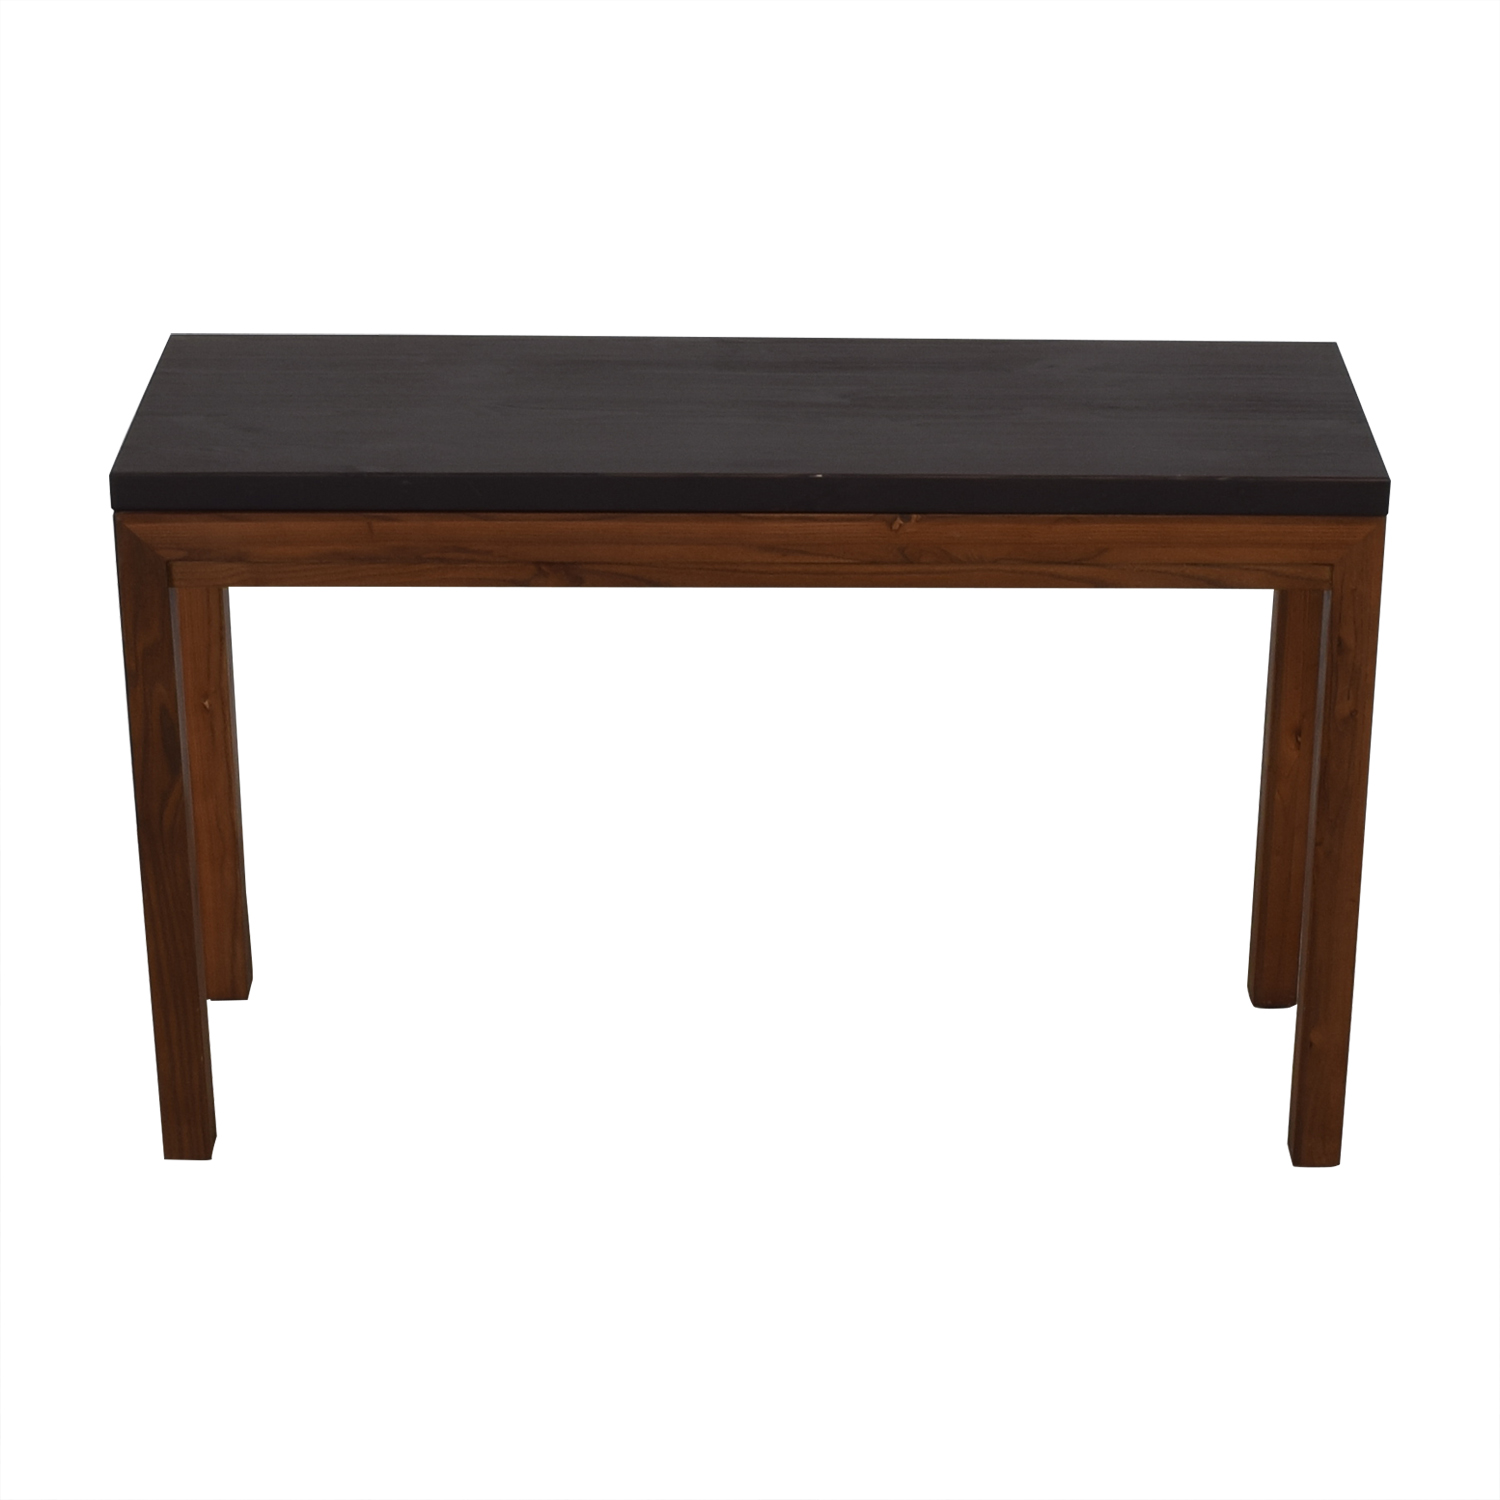 Crate & Barrel Crate & Barrel Parsons High Dining Table second hand